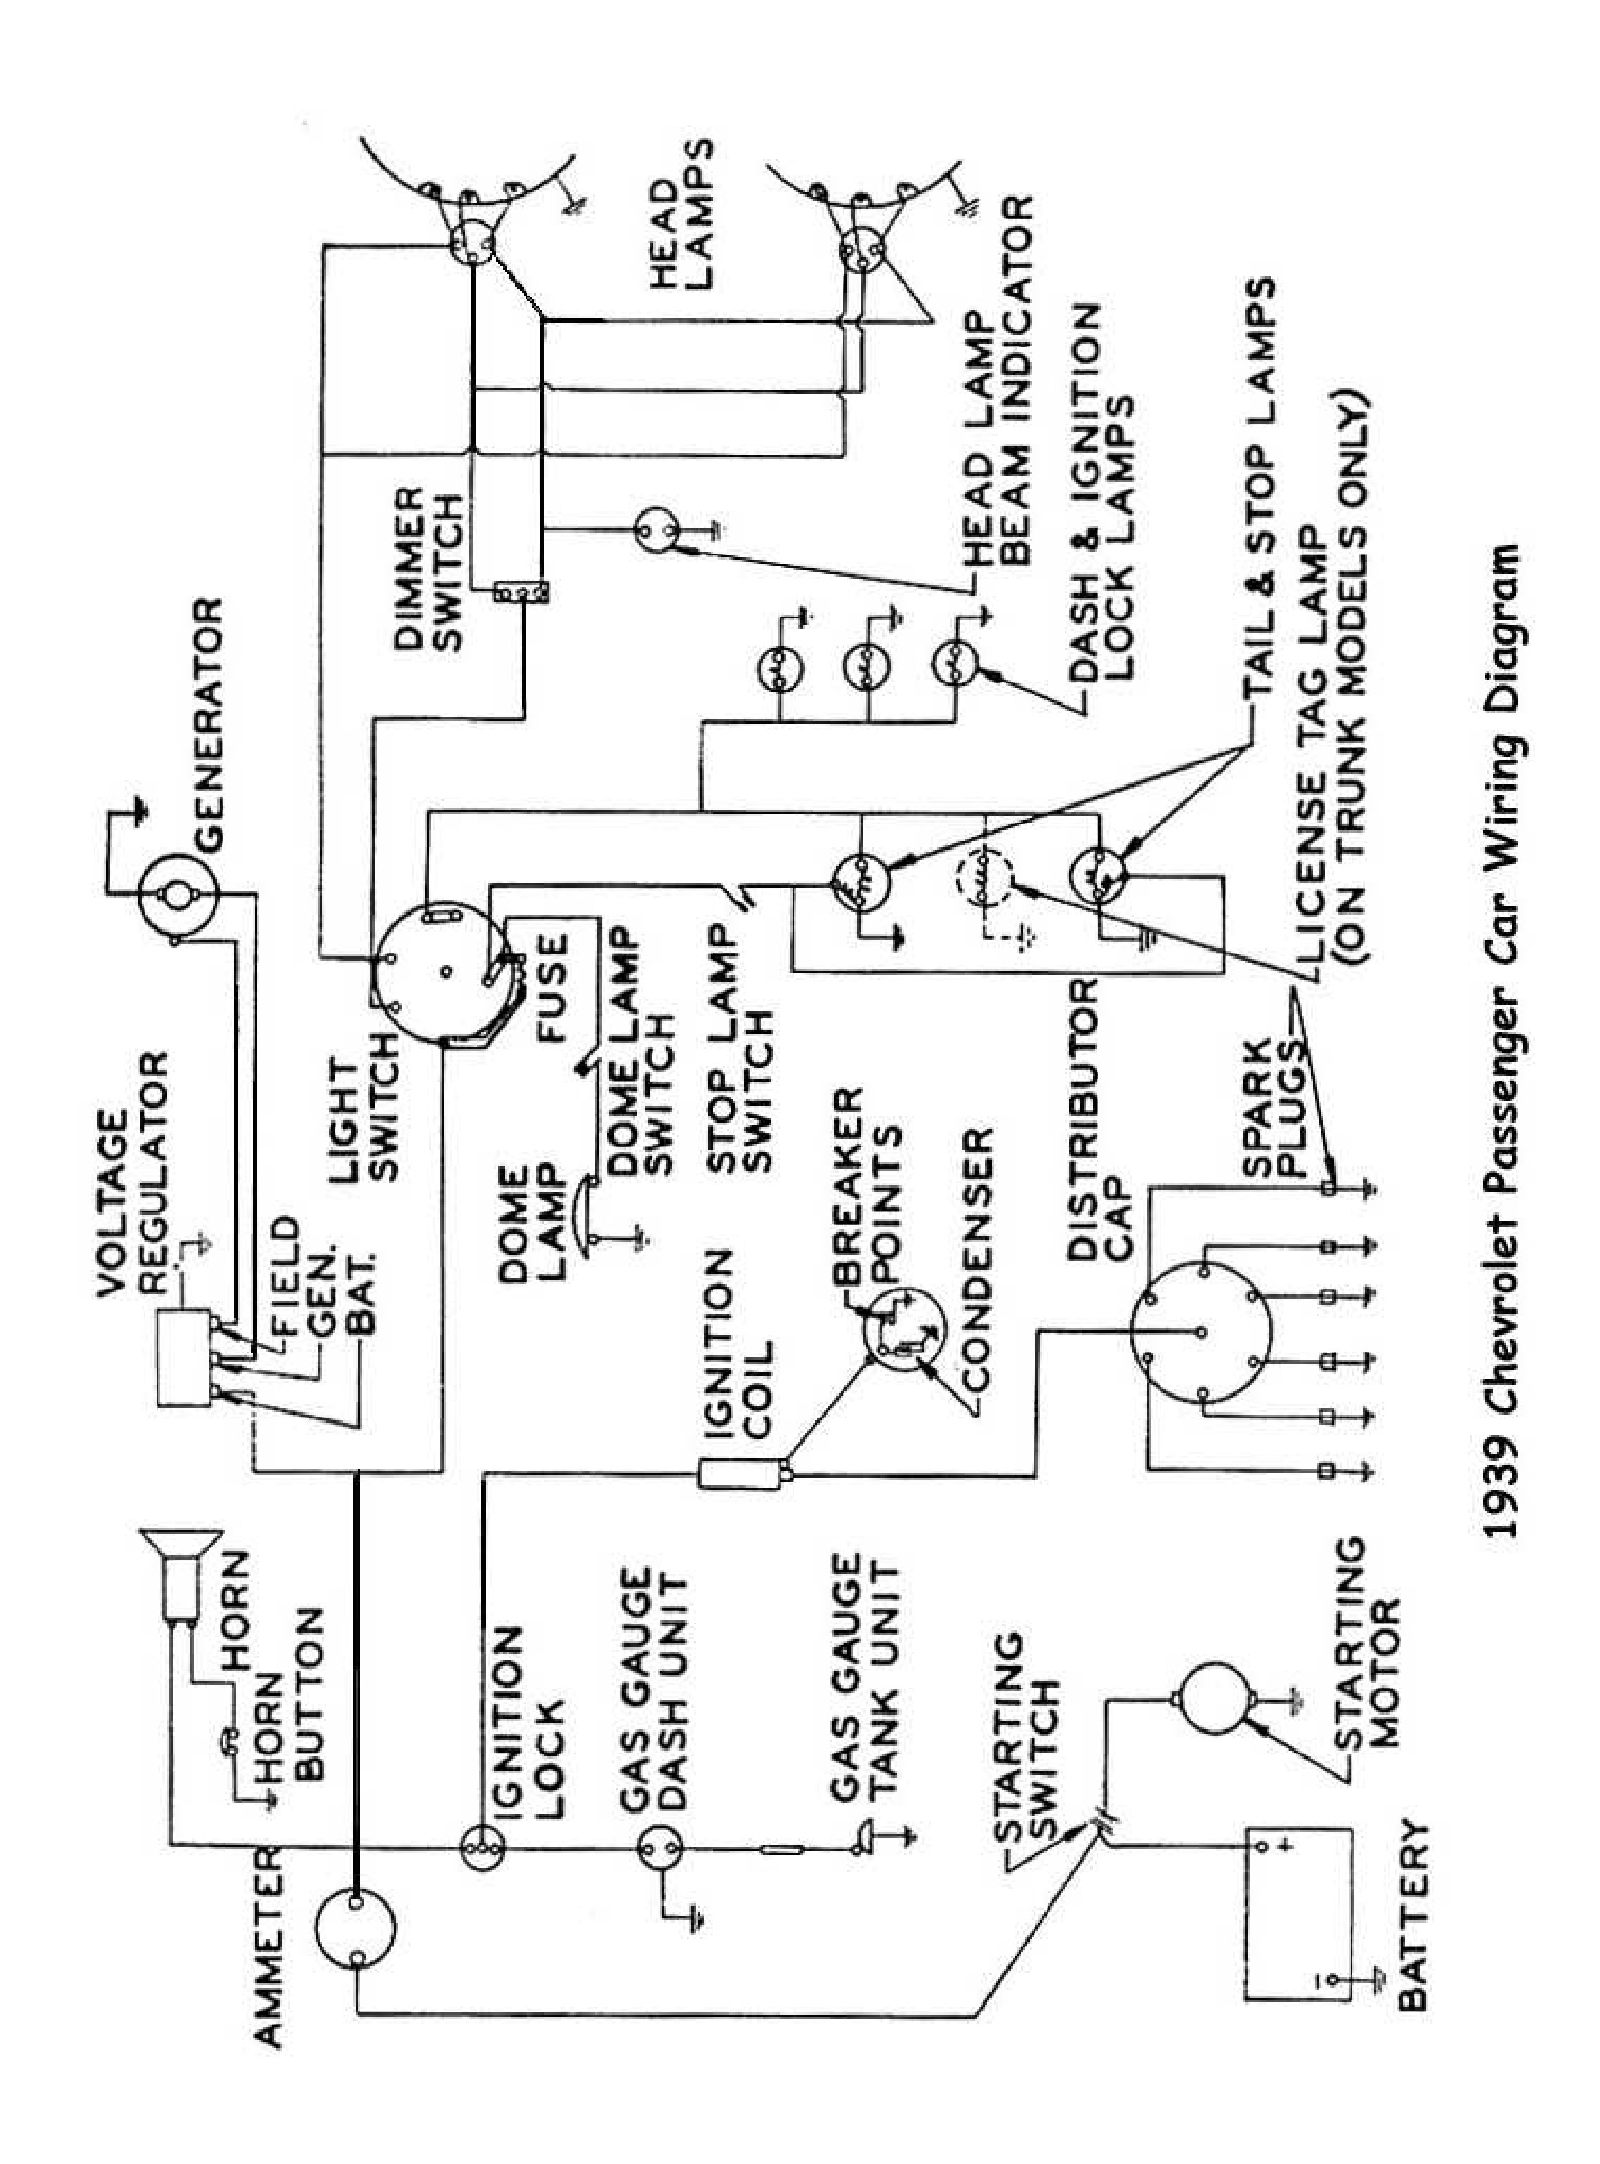 chevy wiring diagrams 1998 Chevy Silverado Fuse Box Diagram 1939 passenger car wiring